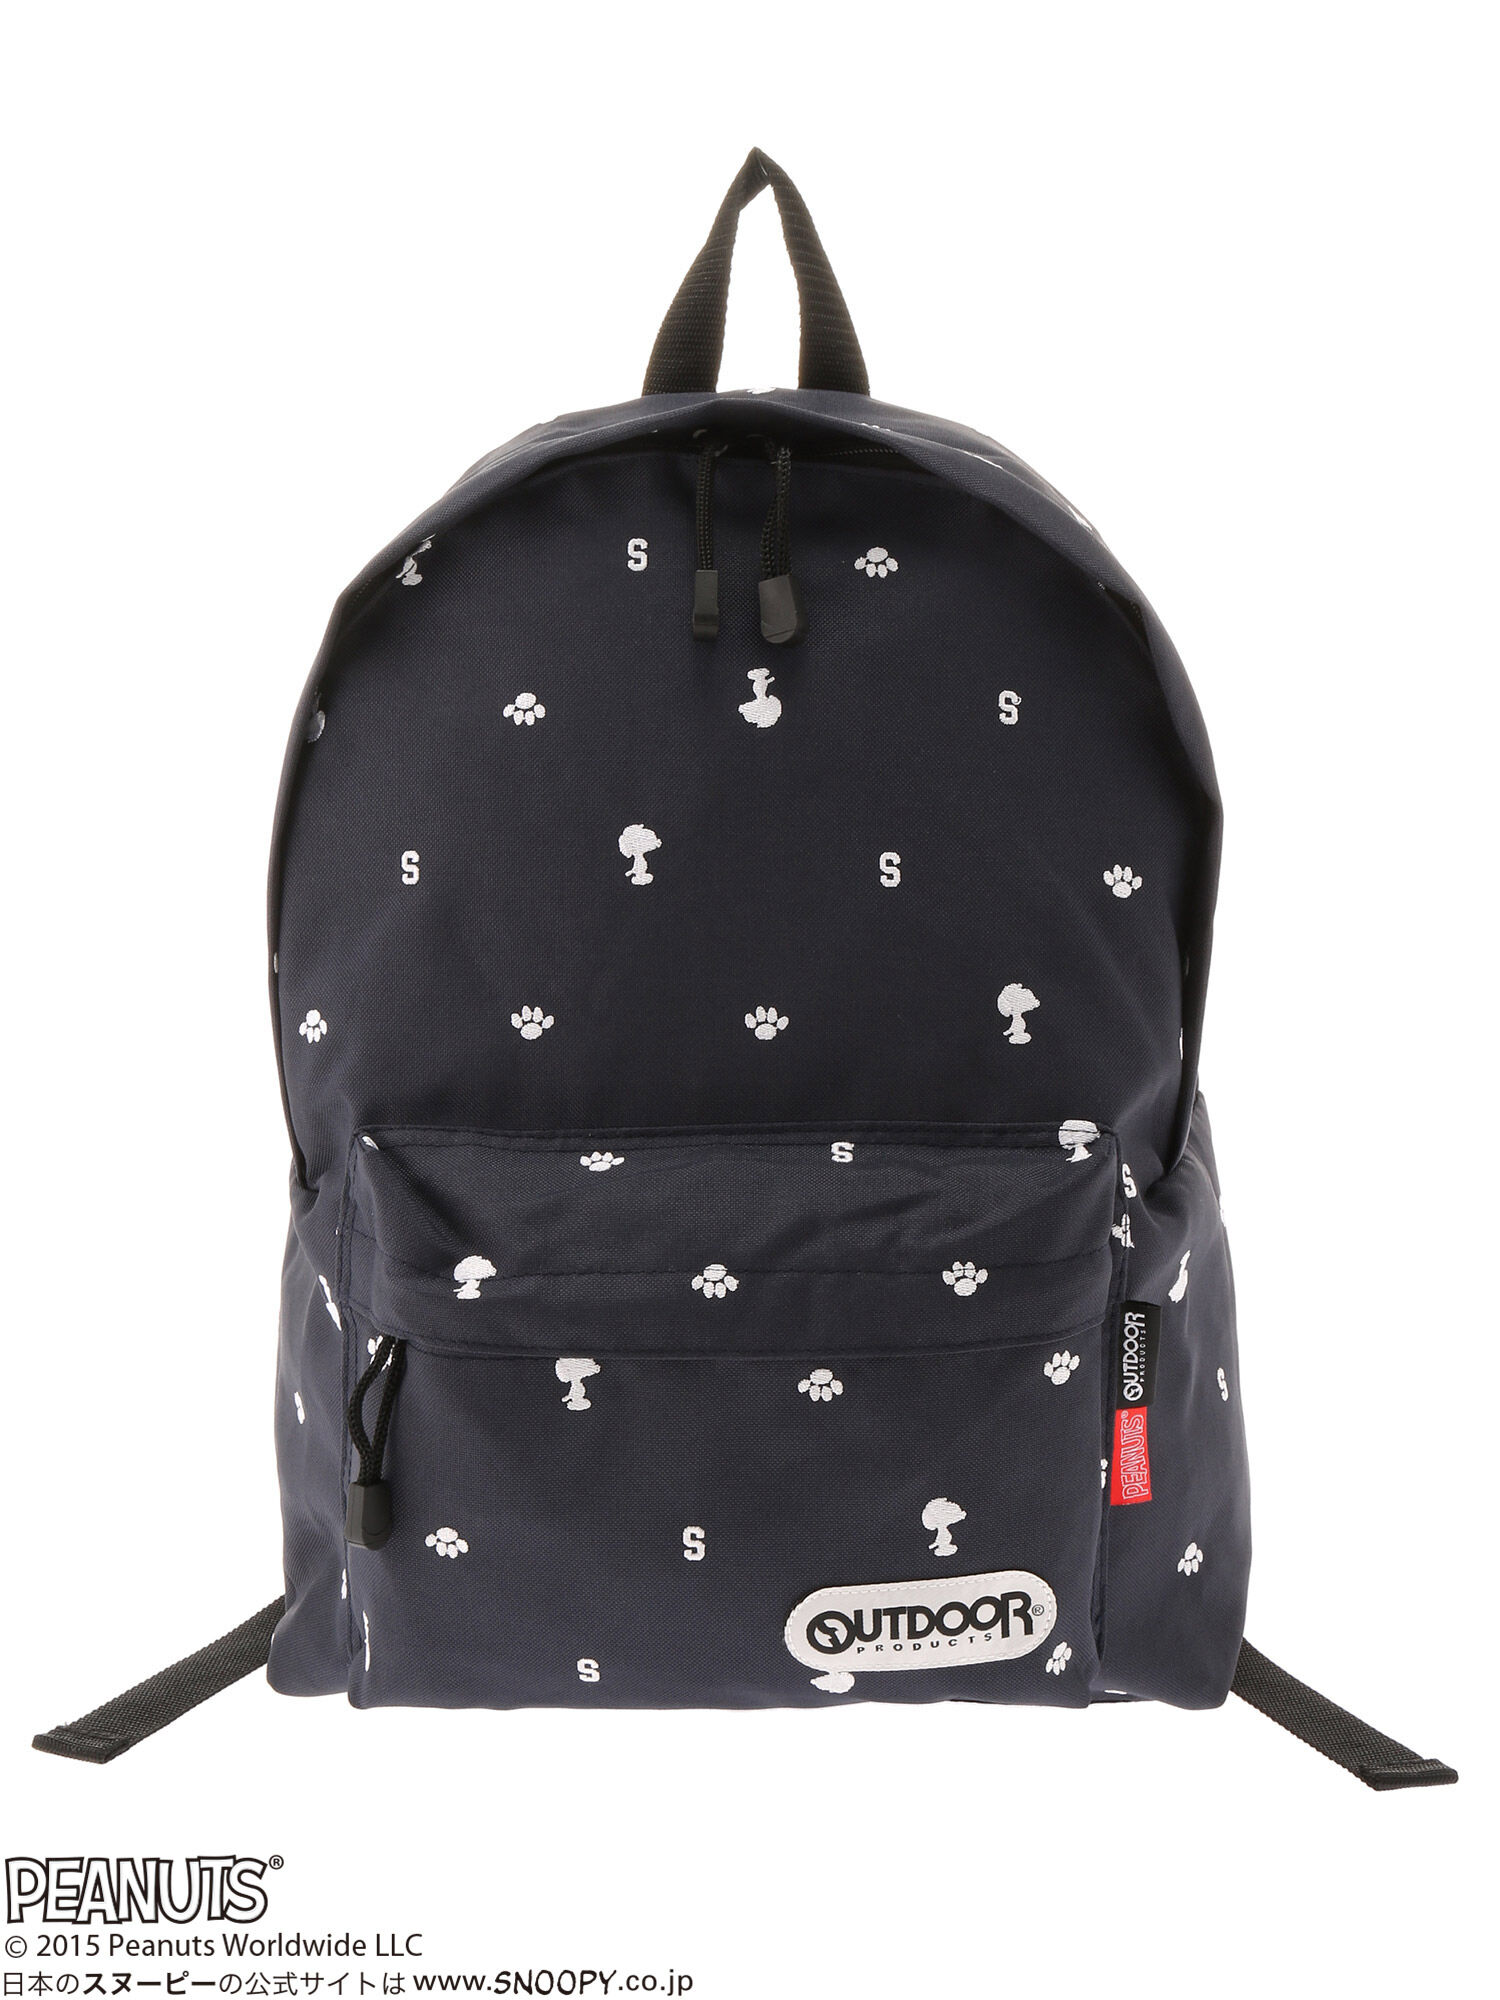 OUTDOOR・snoopy・earthデイバッグ